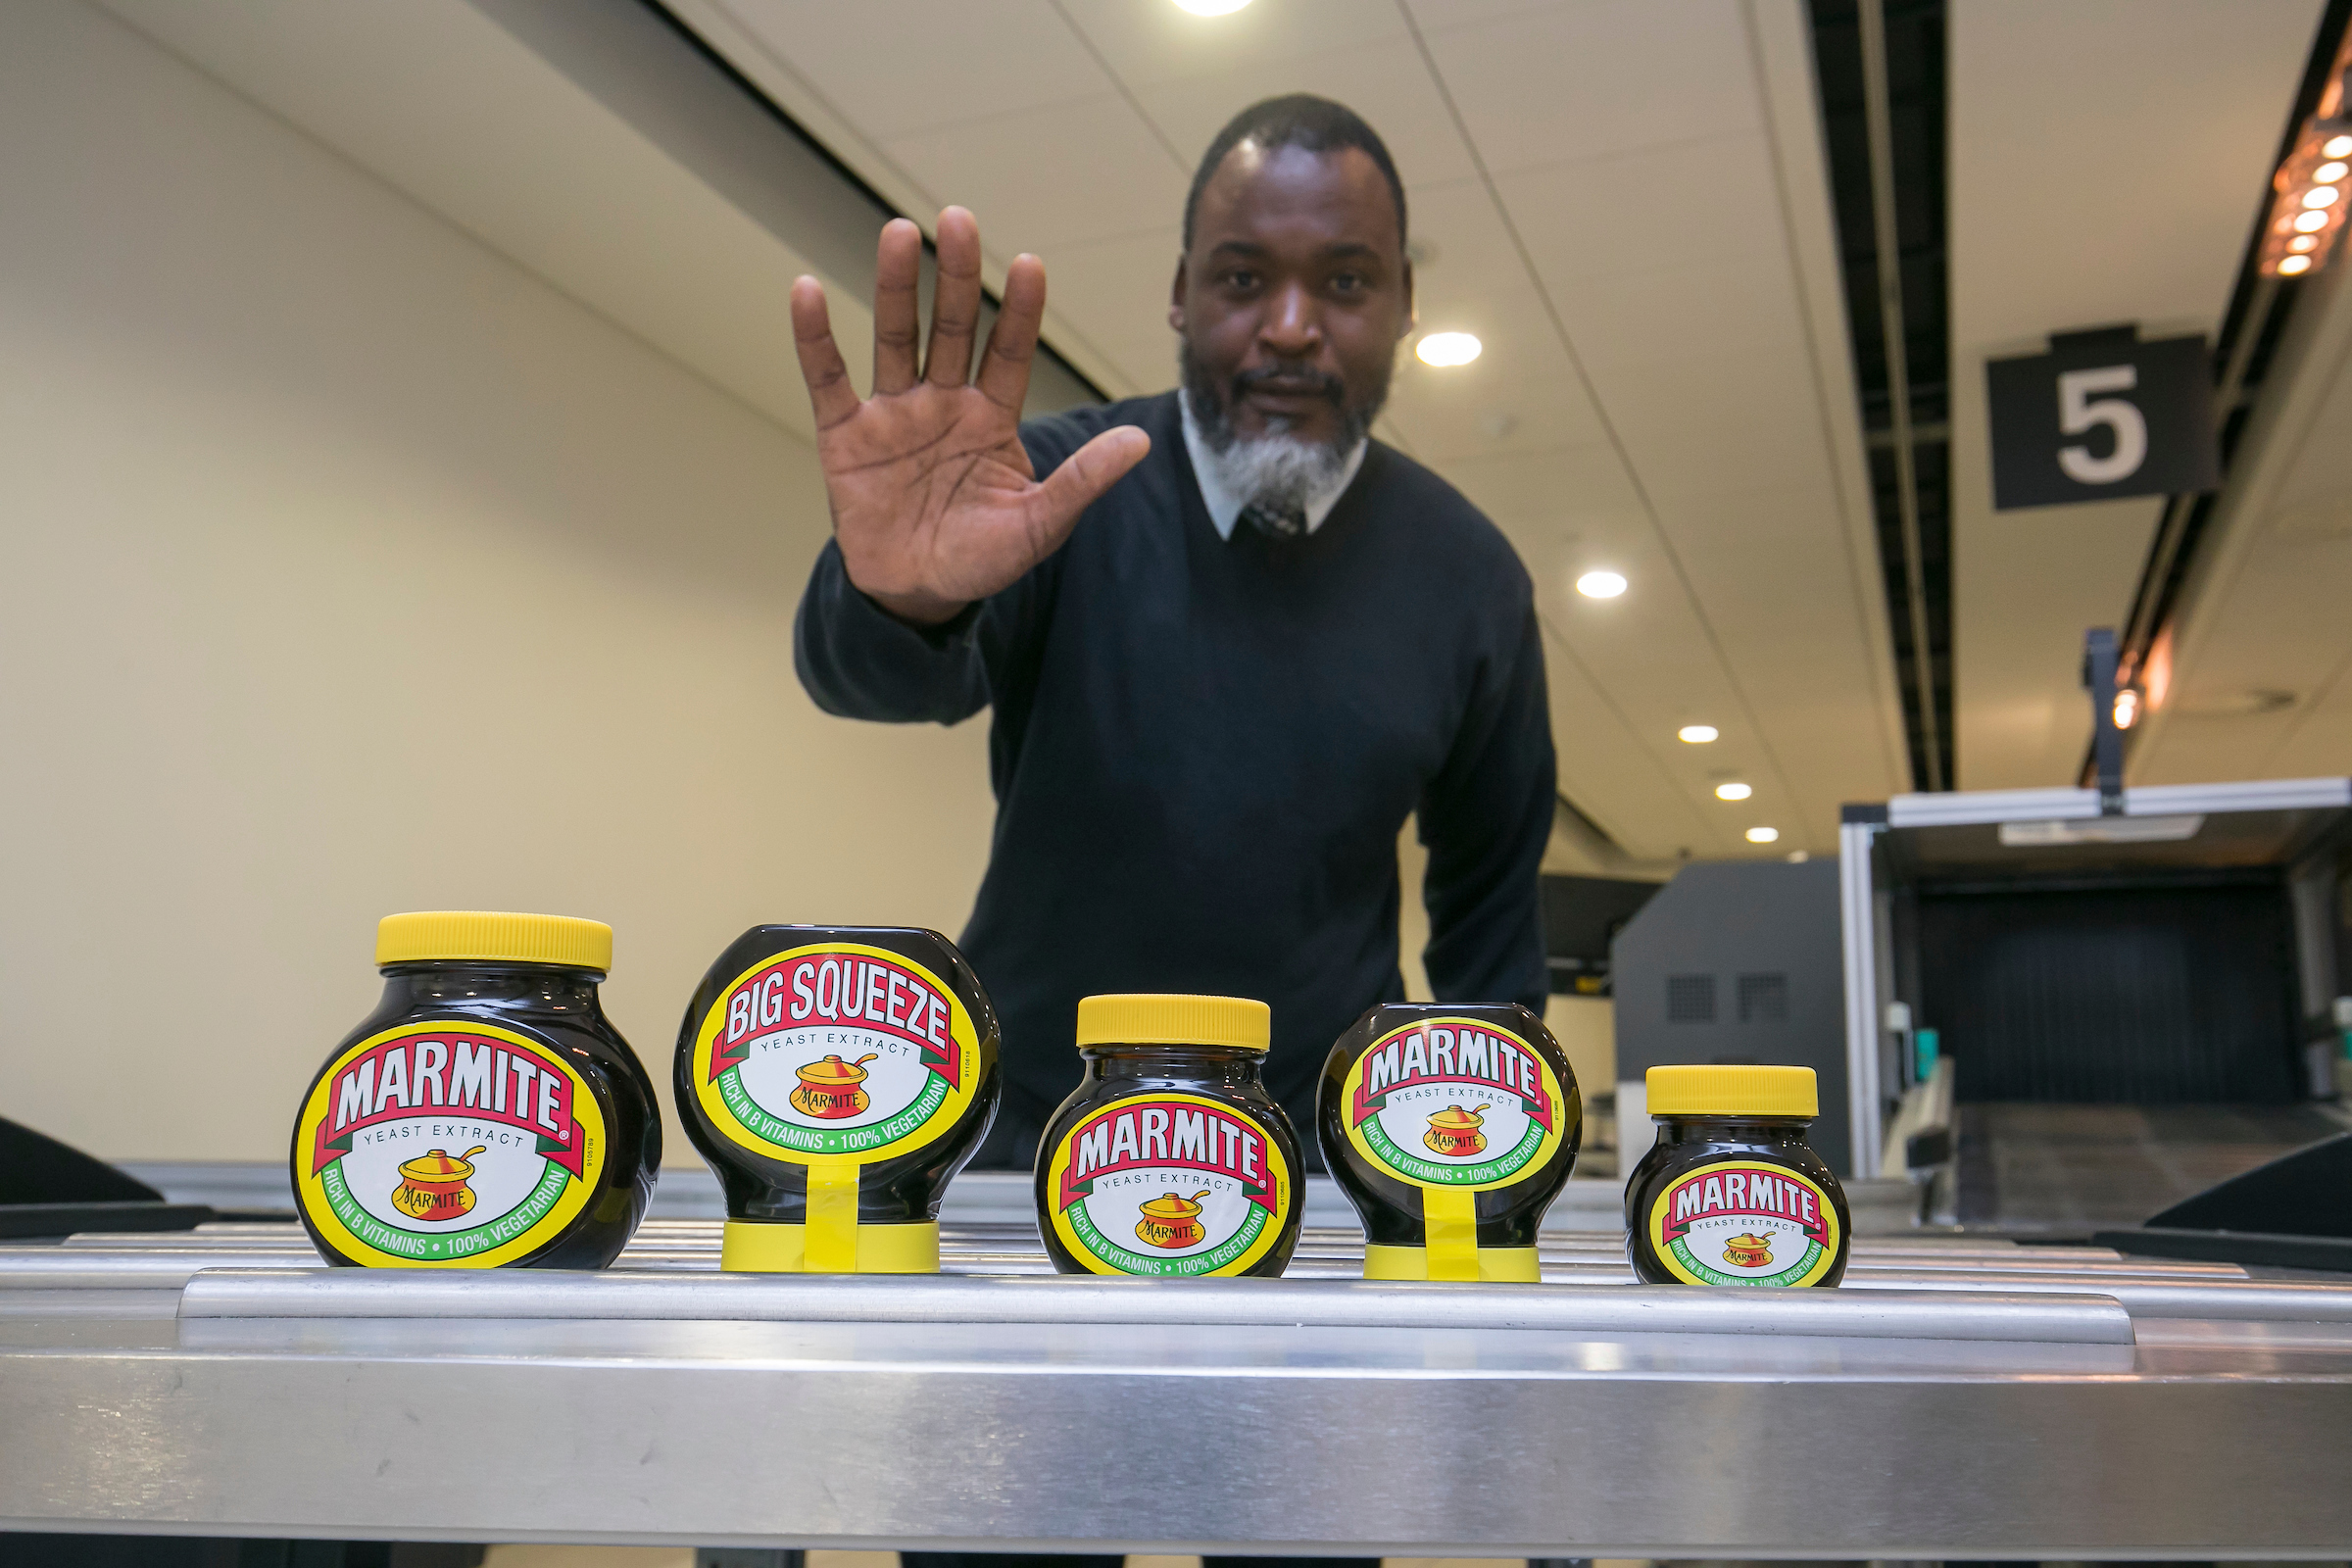 Marmite going through airport security (Marmite/PA)